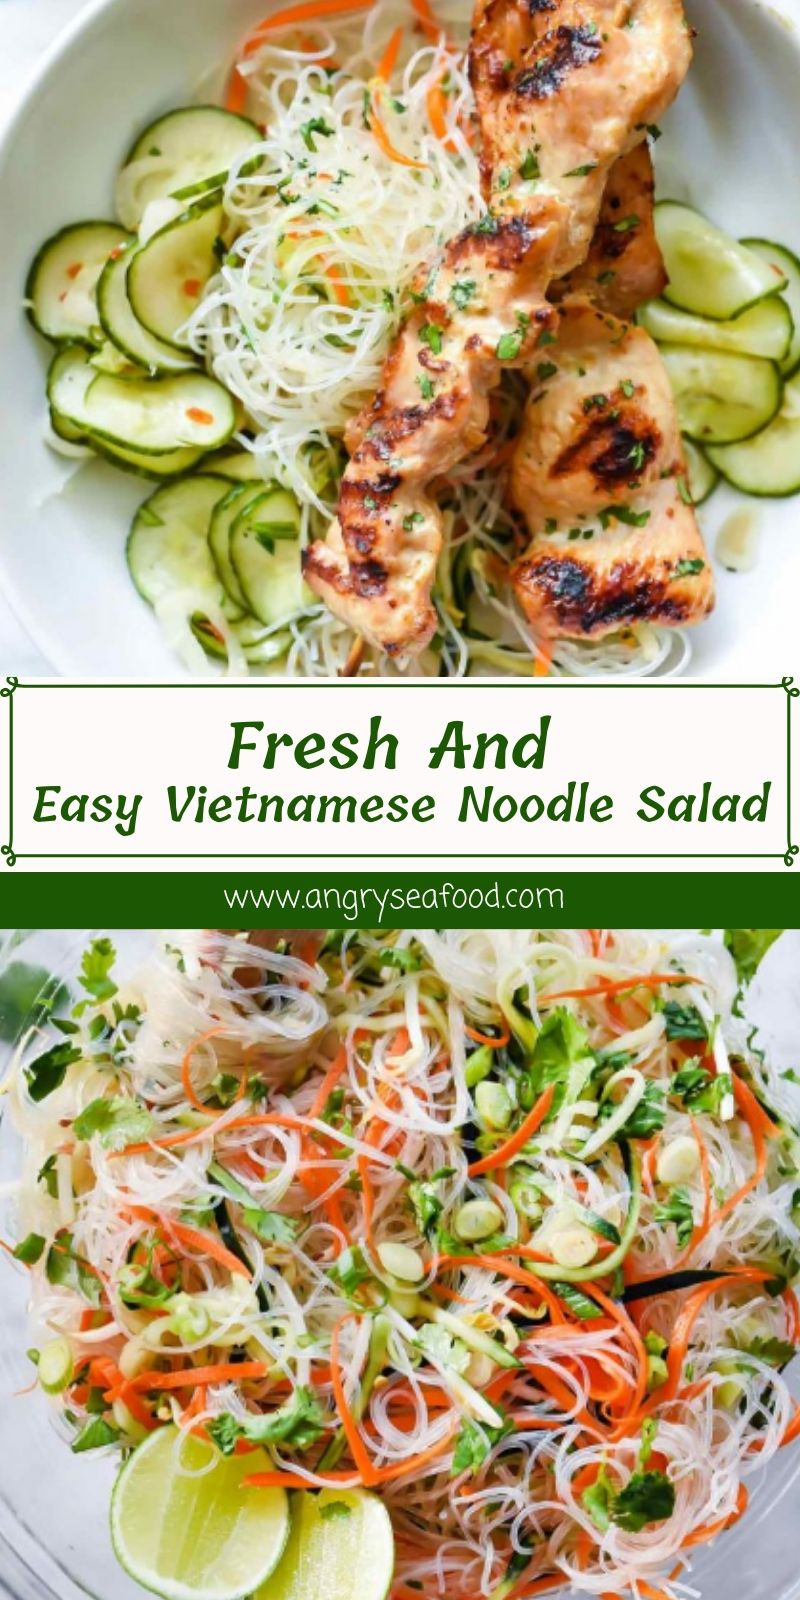 https://www.foodiecrush.com/easy-vietnamese-noodle-salad/